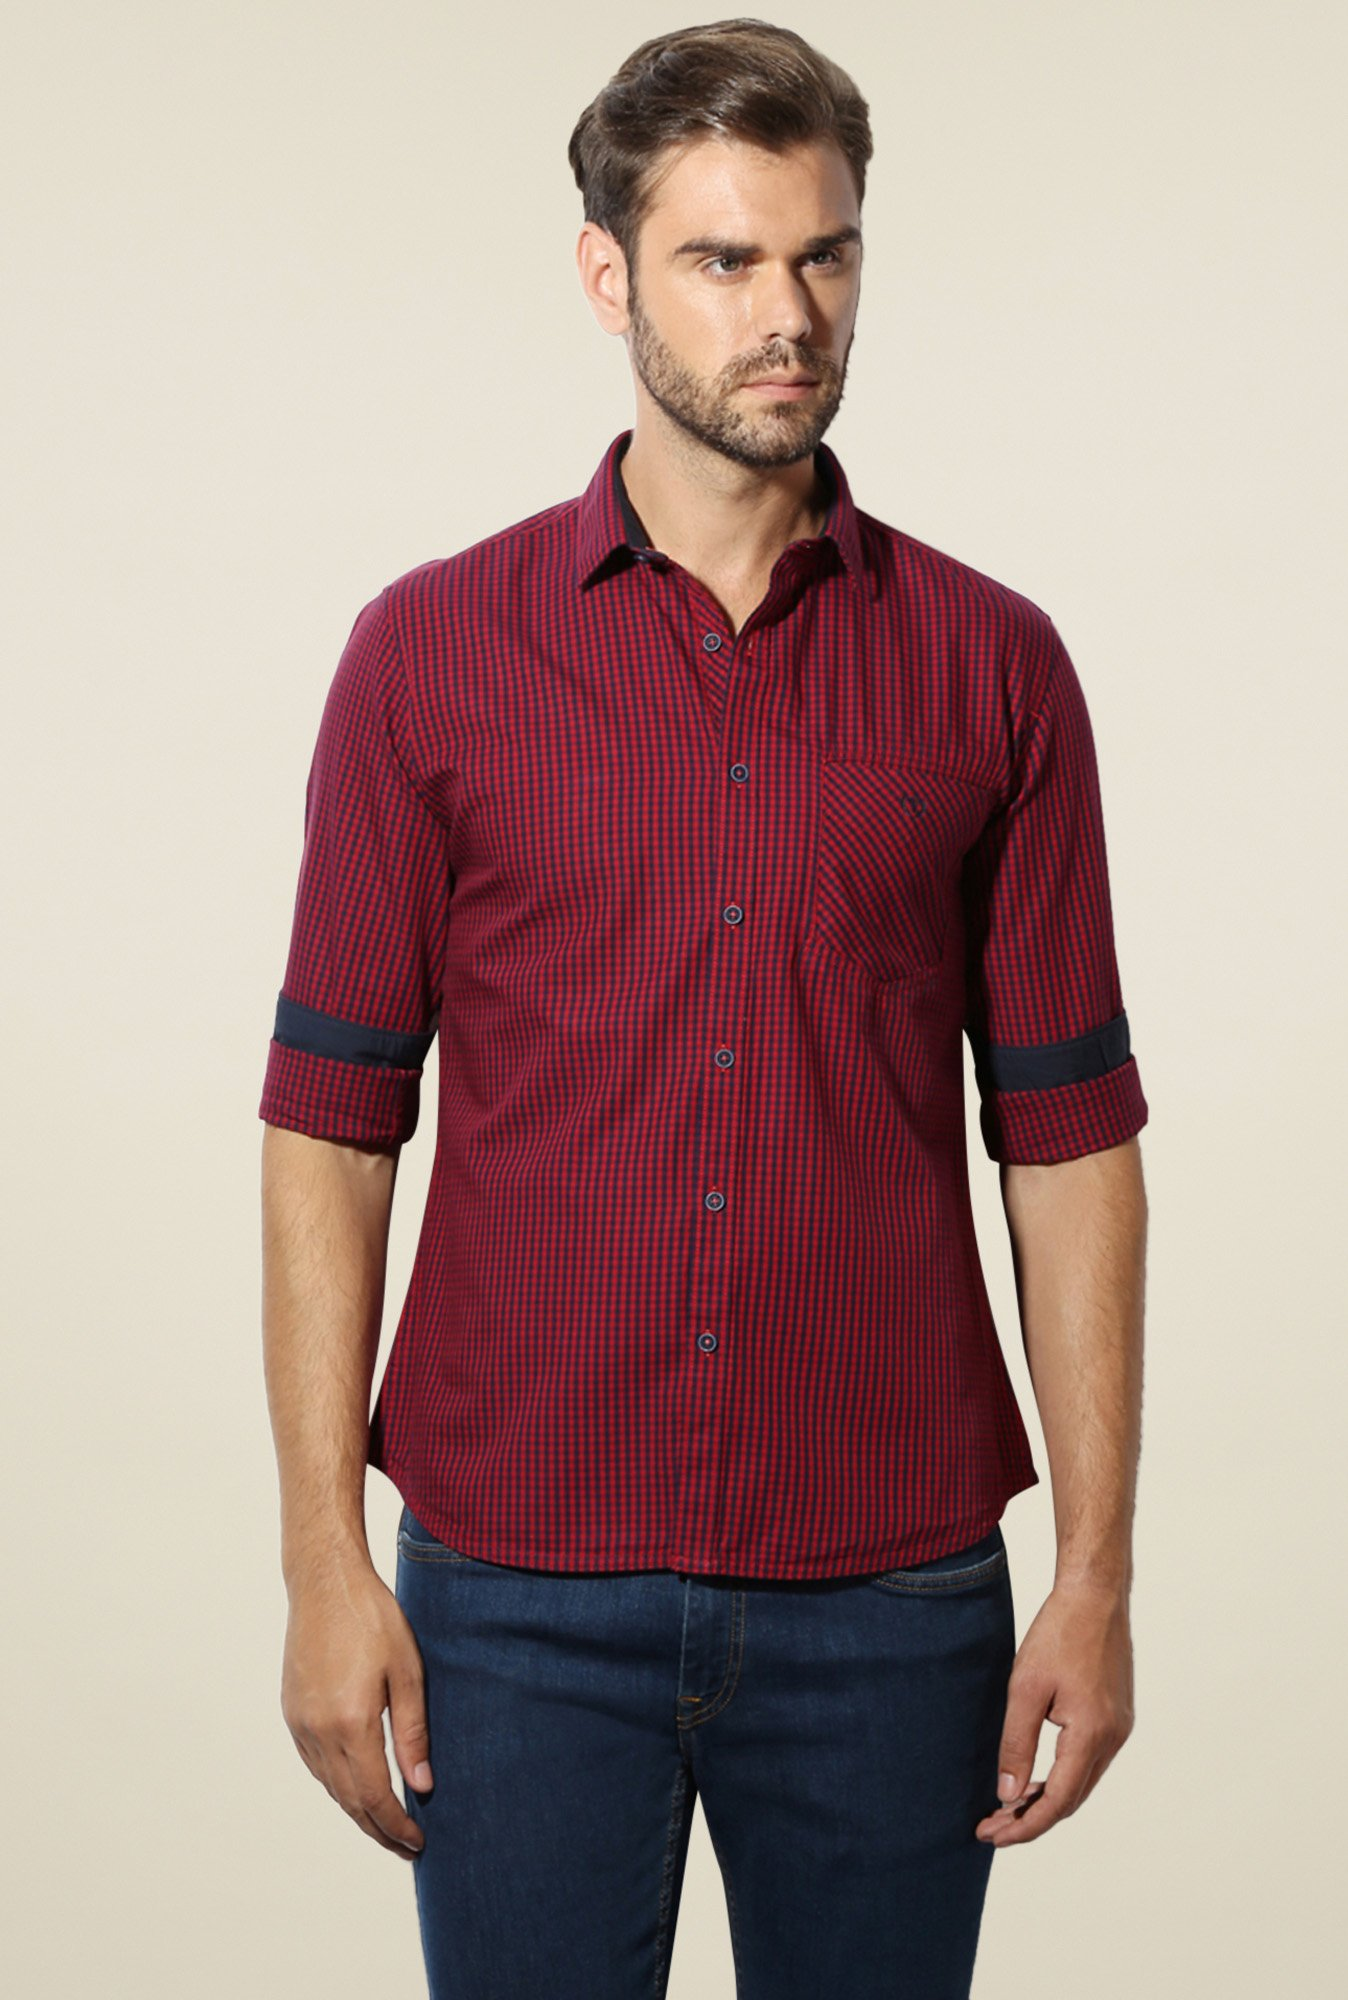 Van Heusen Red Checks Cotton Shirt